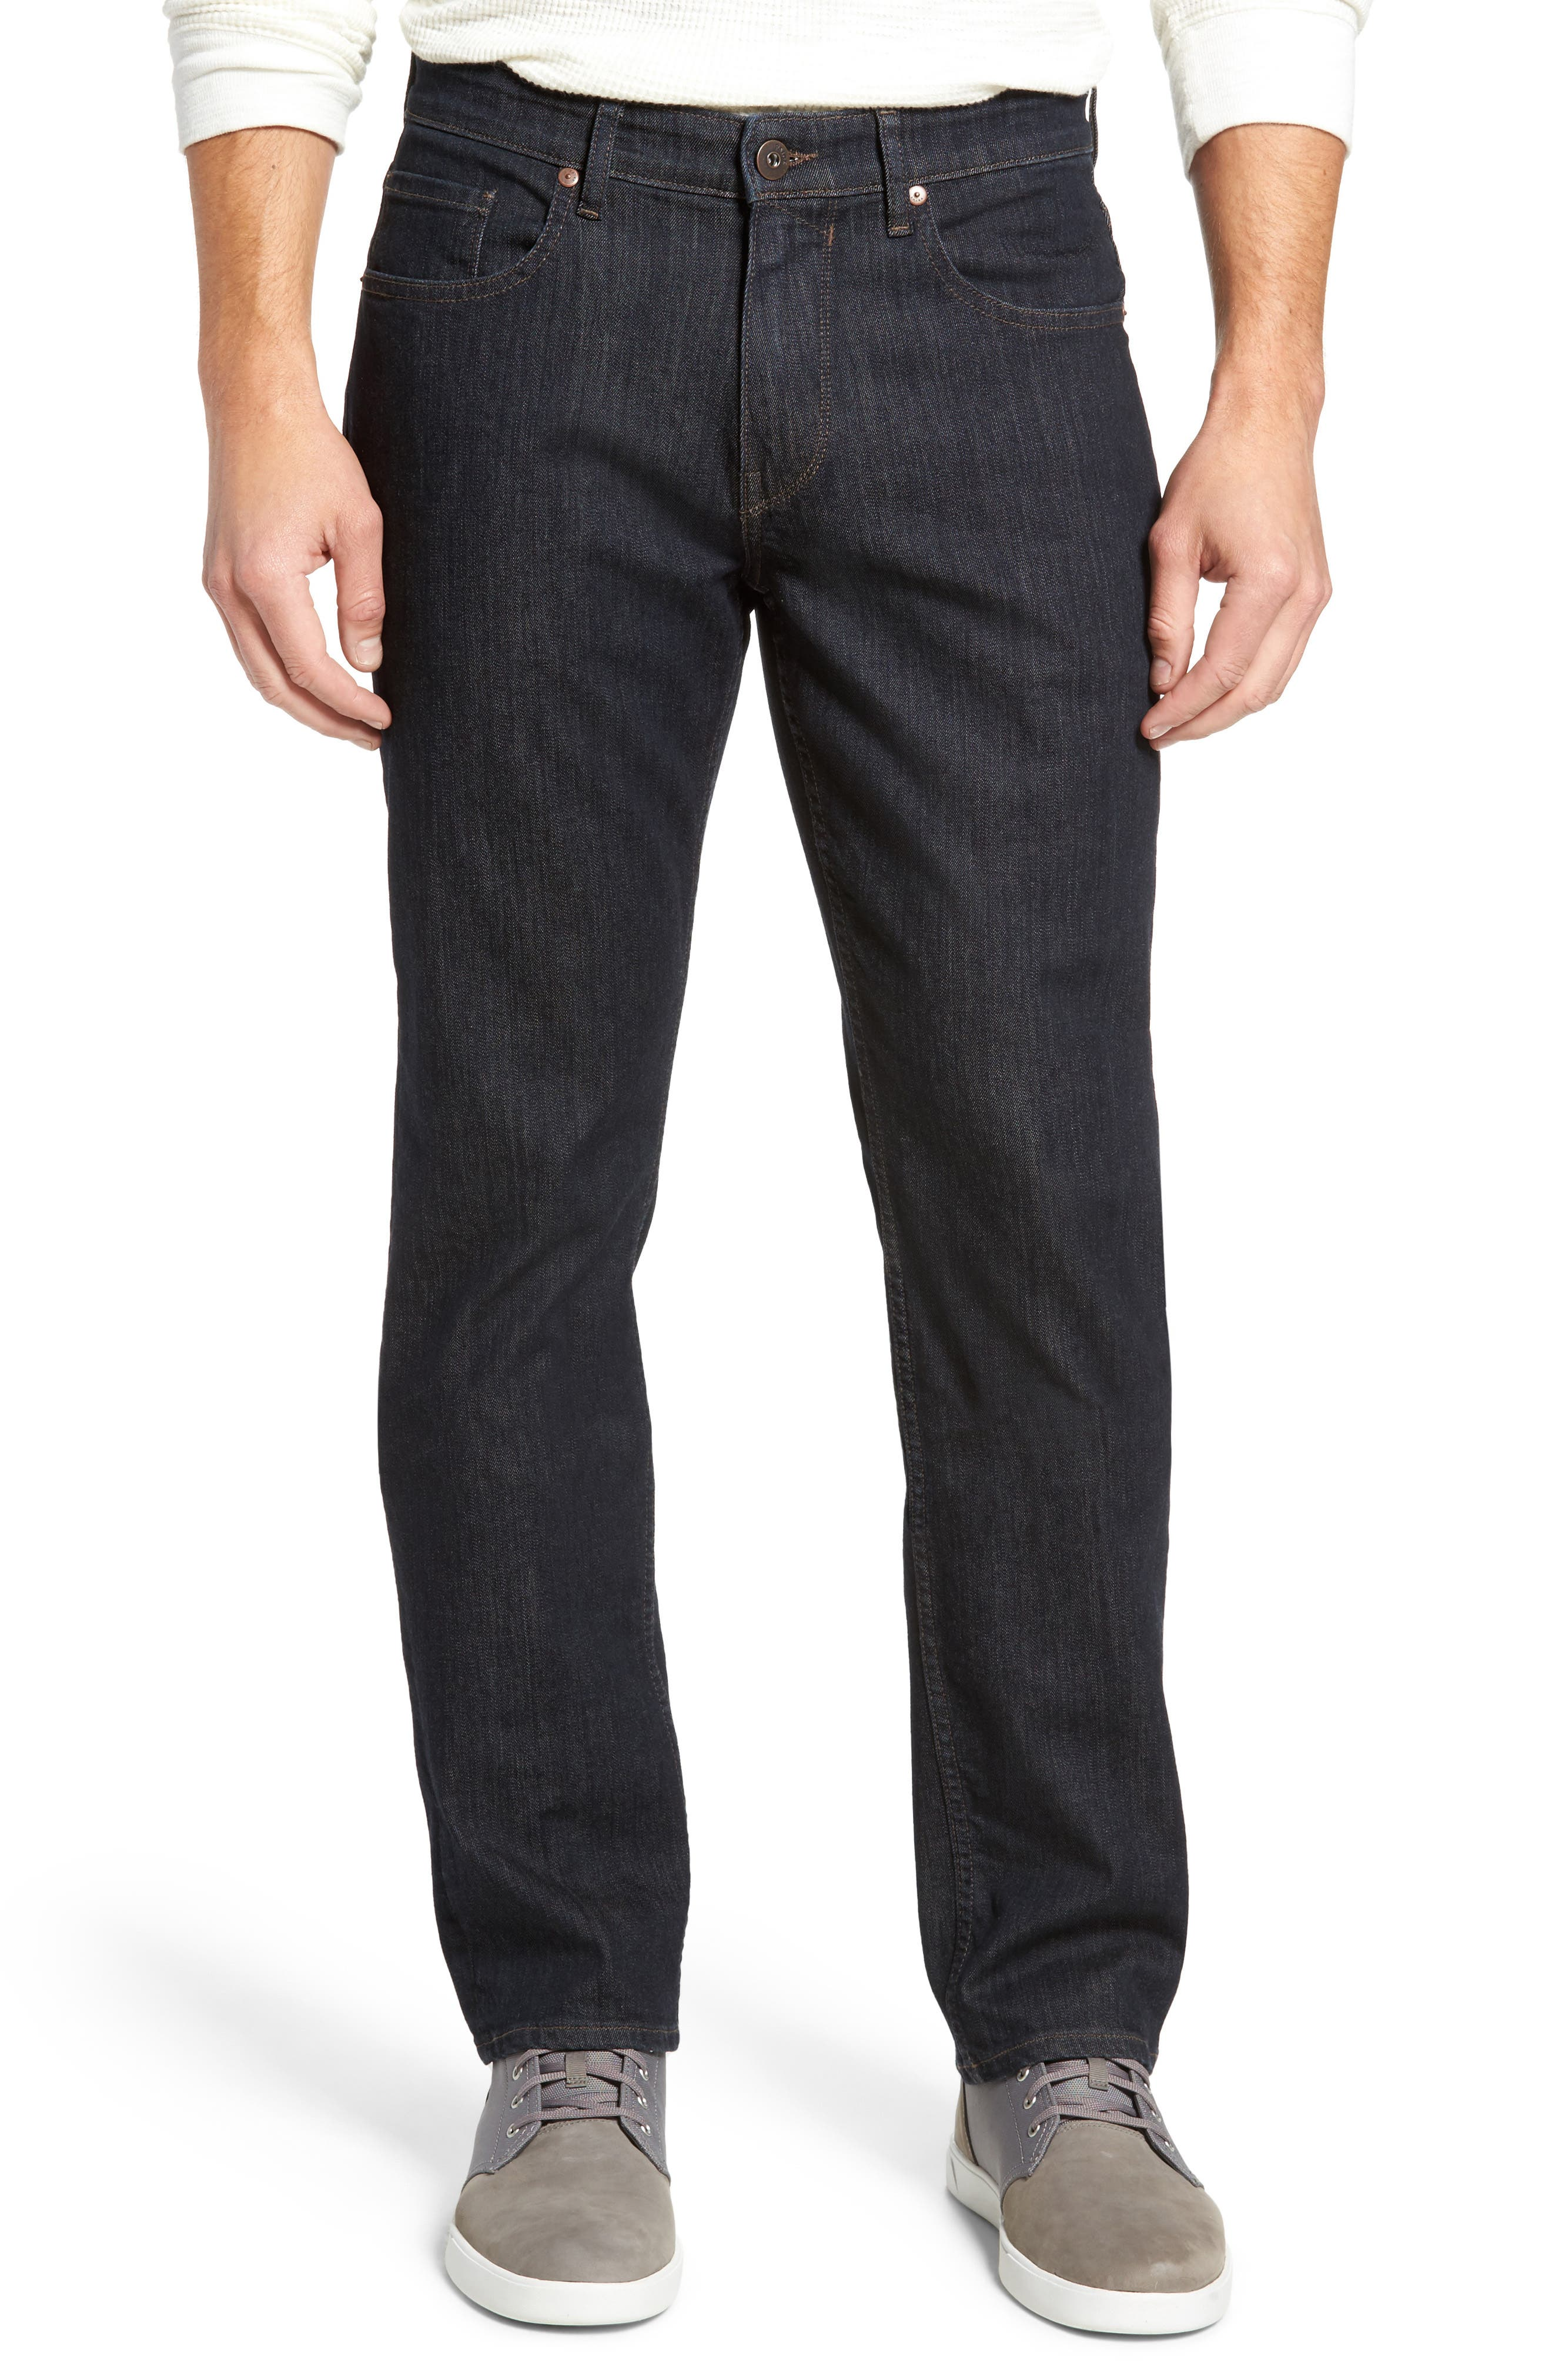 Normandie Straight Leg Jeans,                         Main,                         color, FILLMORE